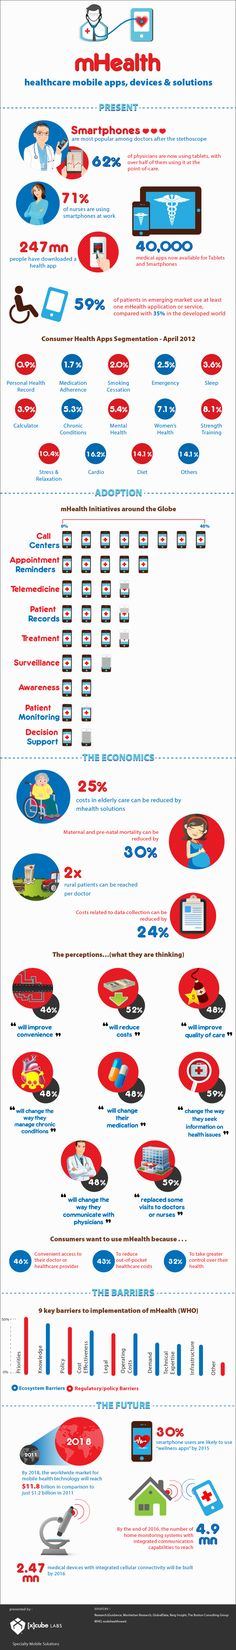 Check out this infographic from mHeath consultancy for a cross section of the mHealth industry, where it has been and how it can help healthcare providers and consumers alike.